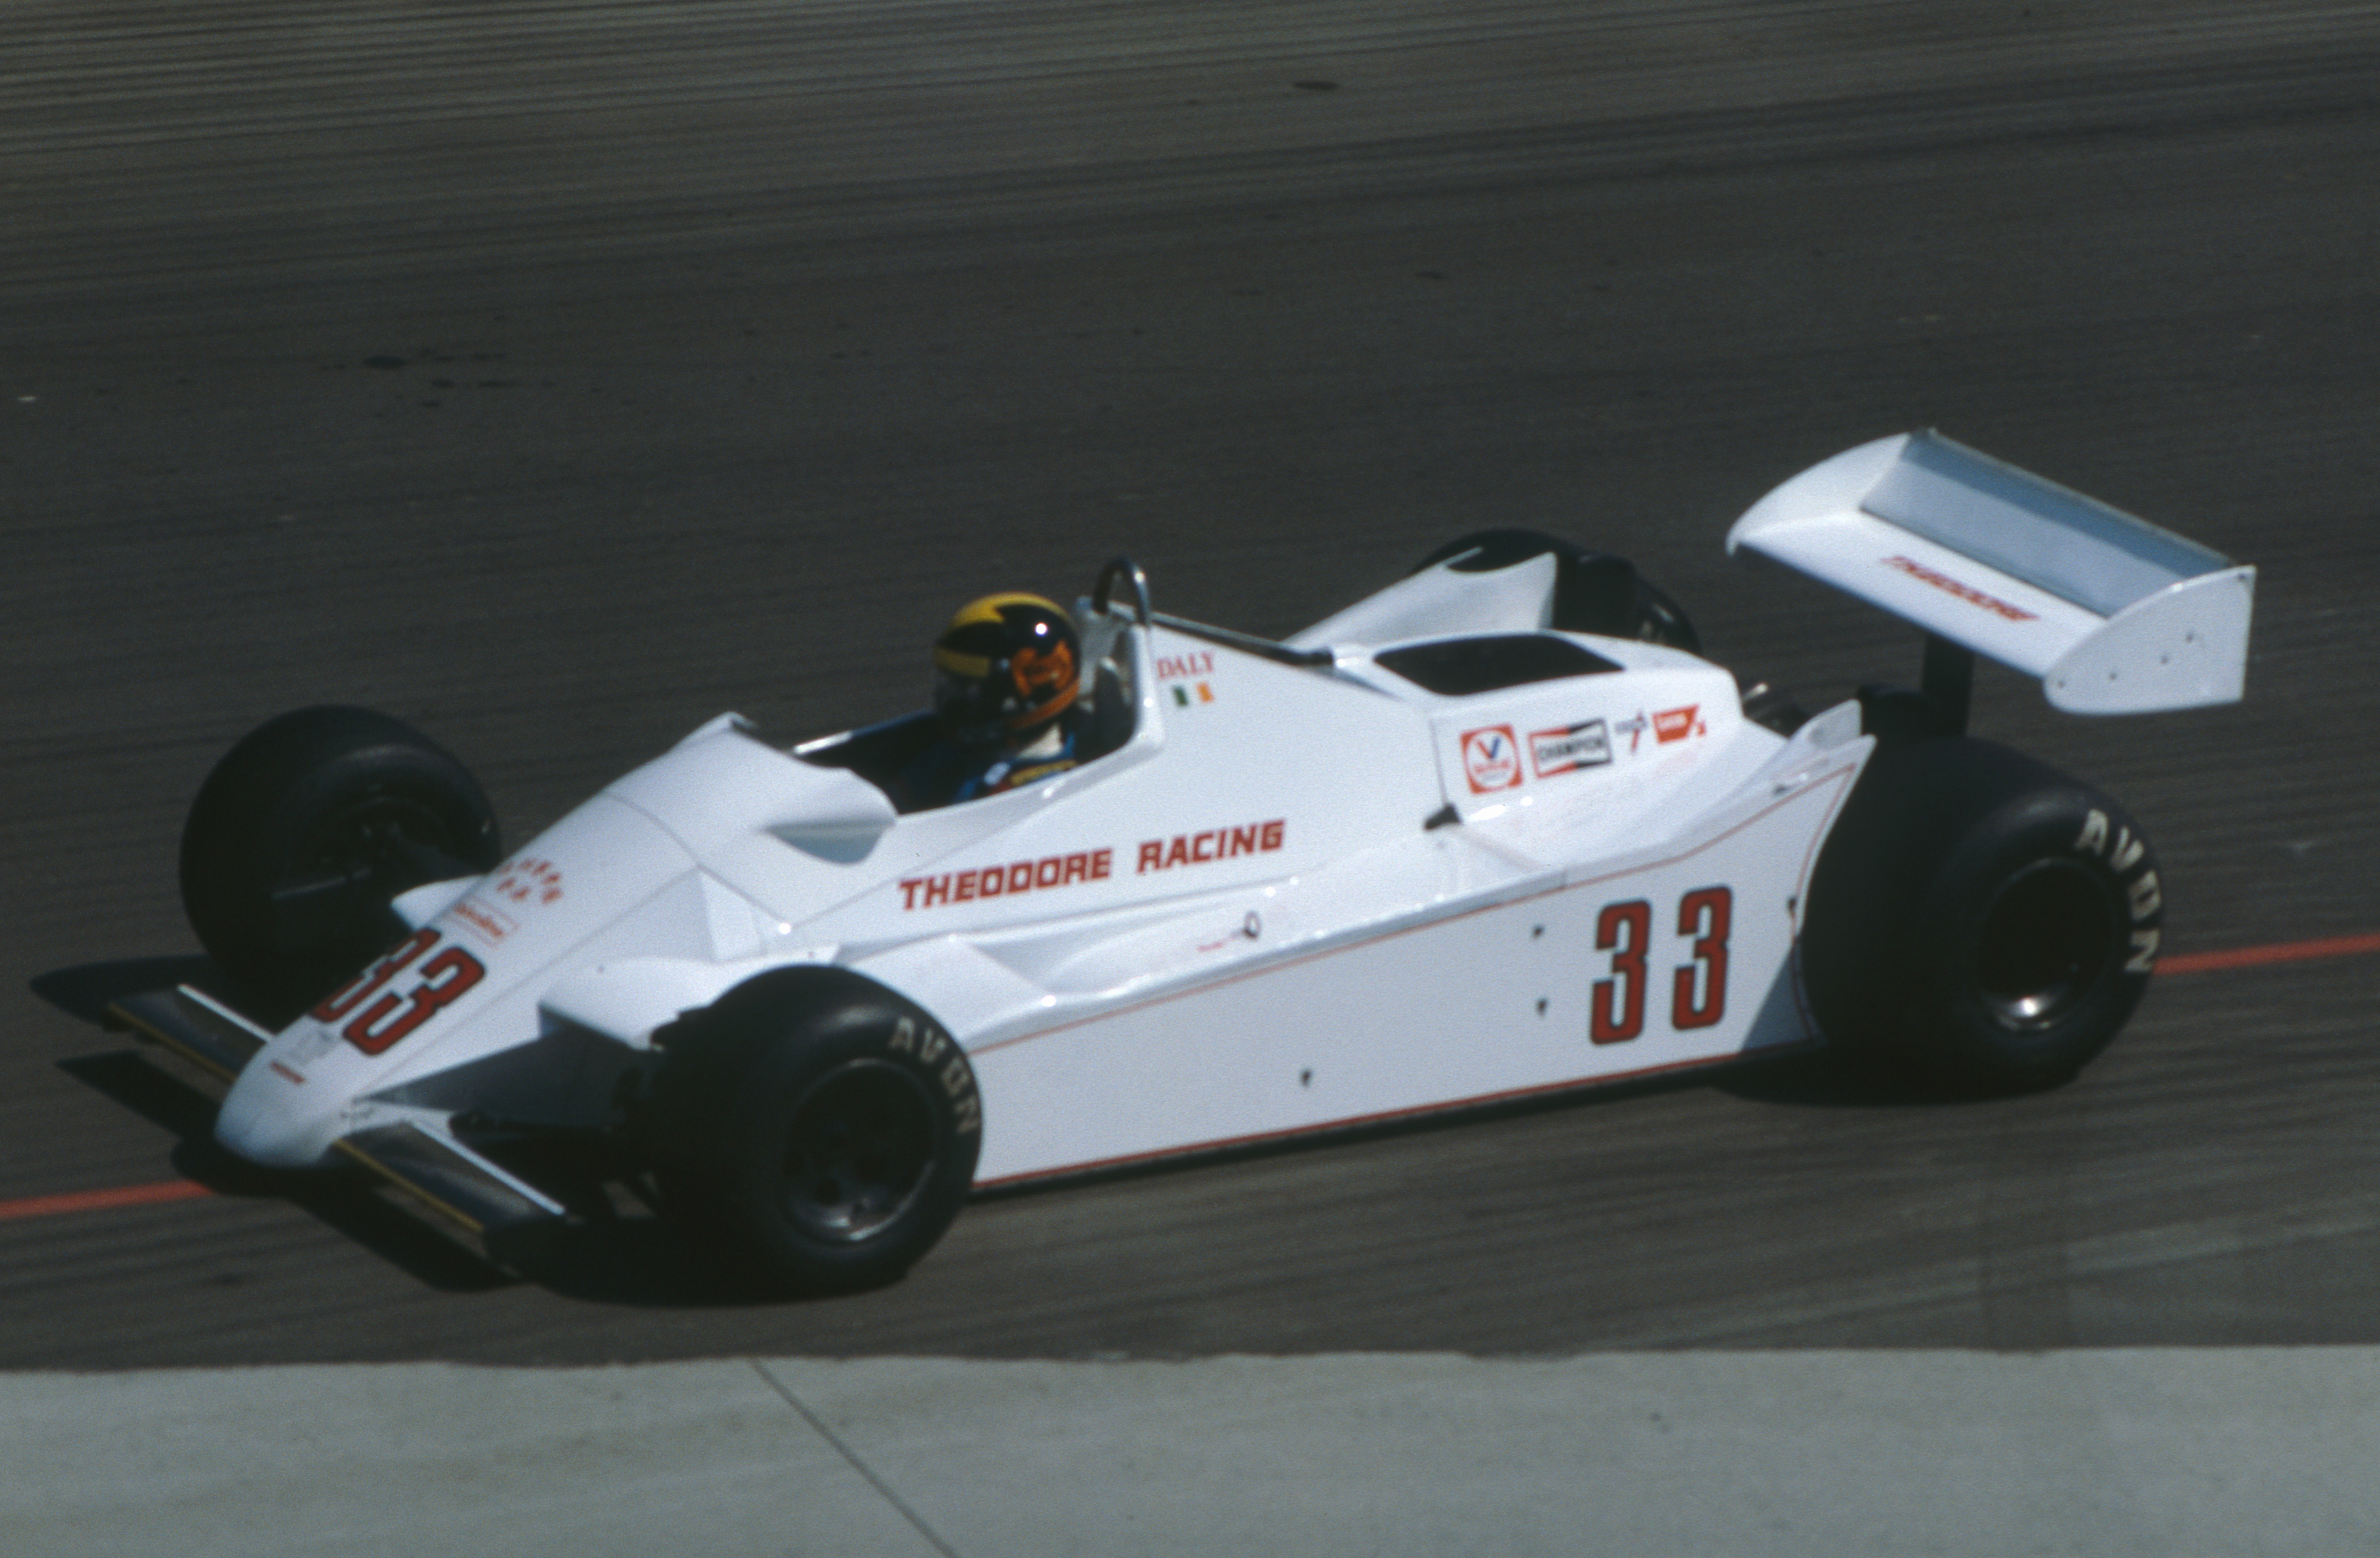 Derek Daly Qualifying the Theodore in the Long Beach GP 1982